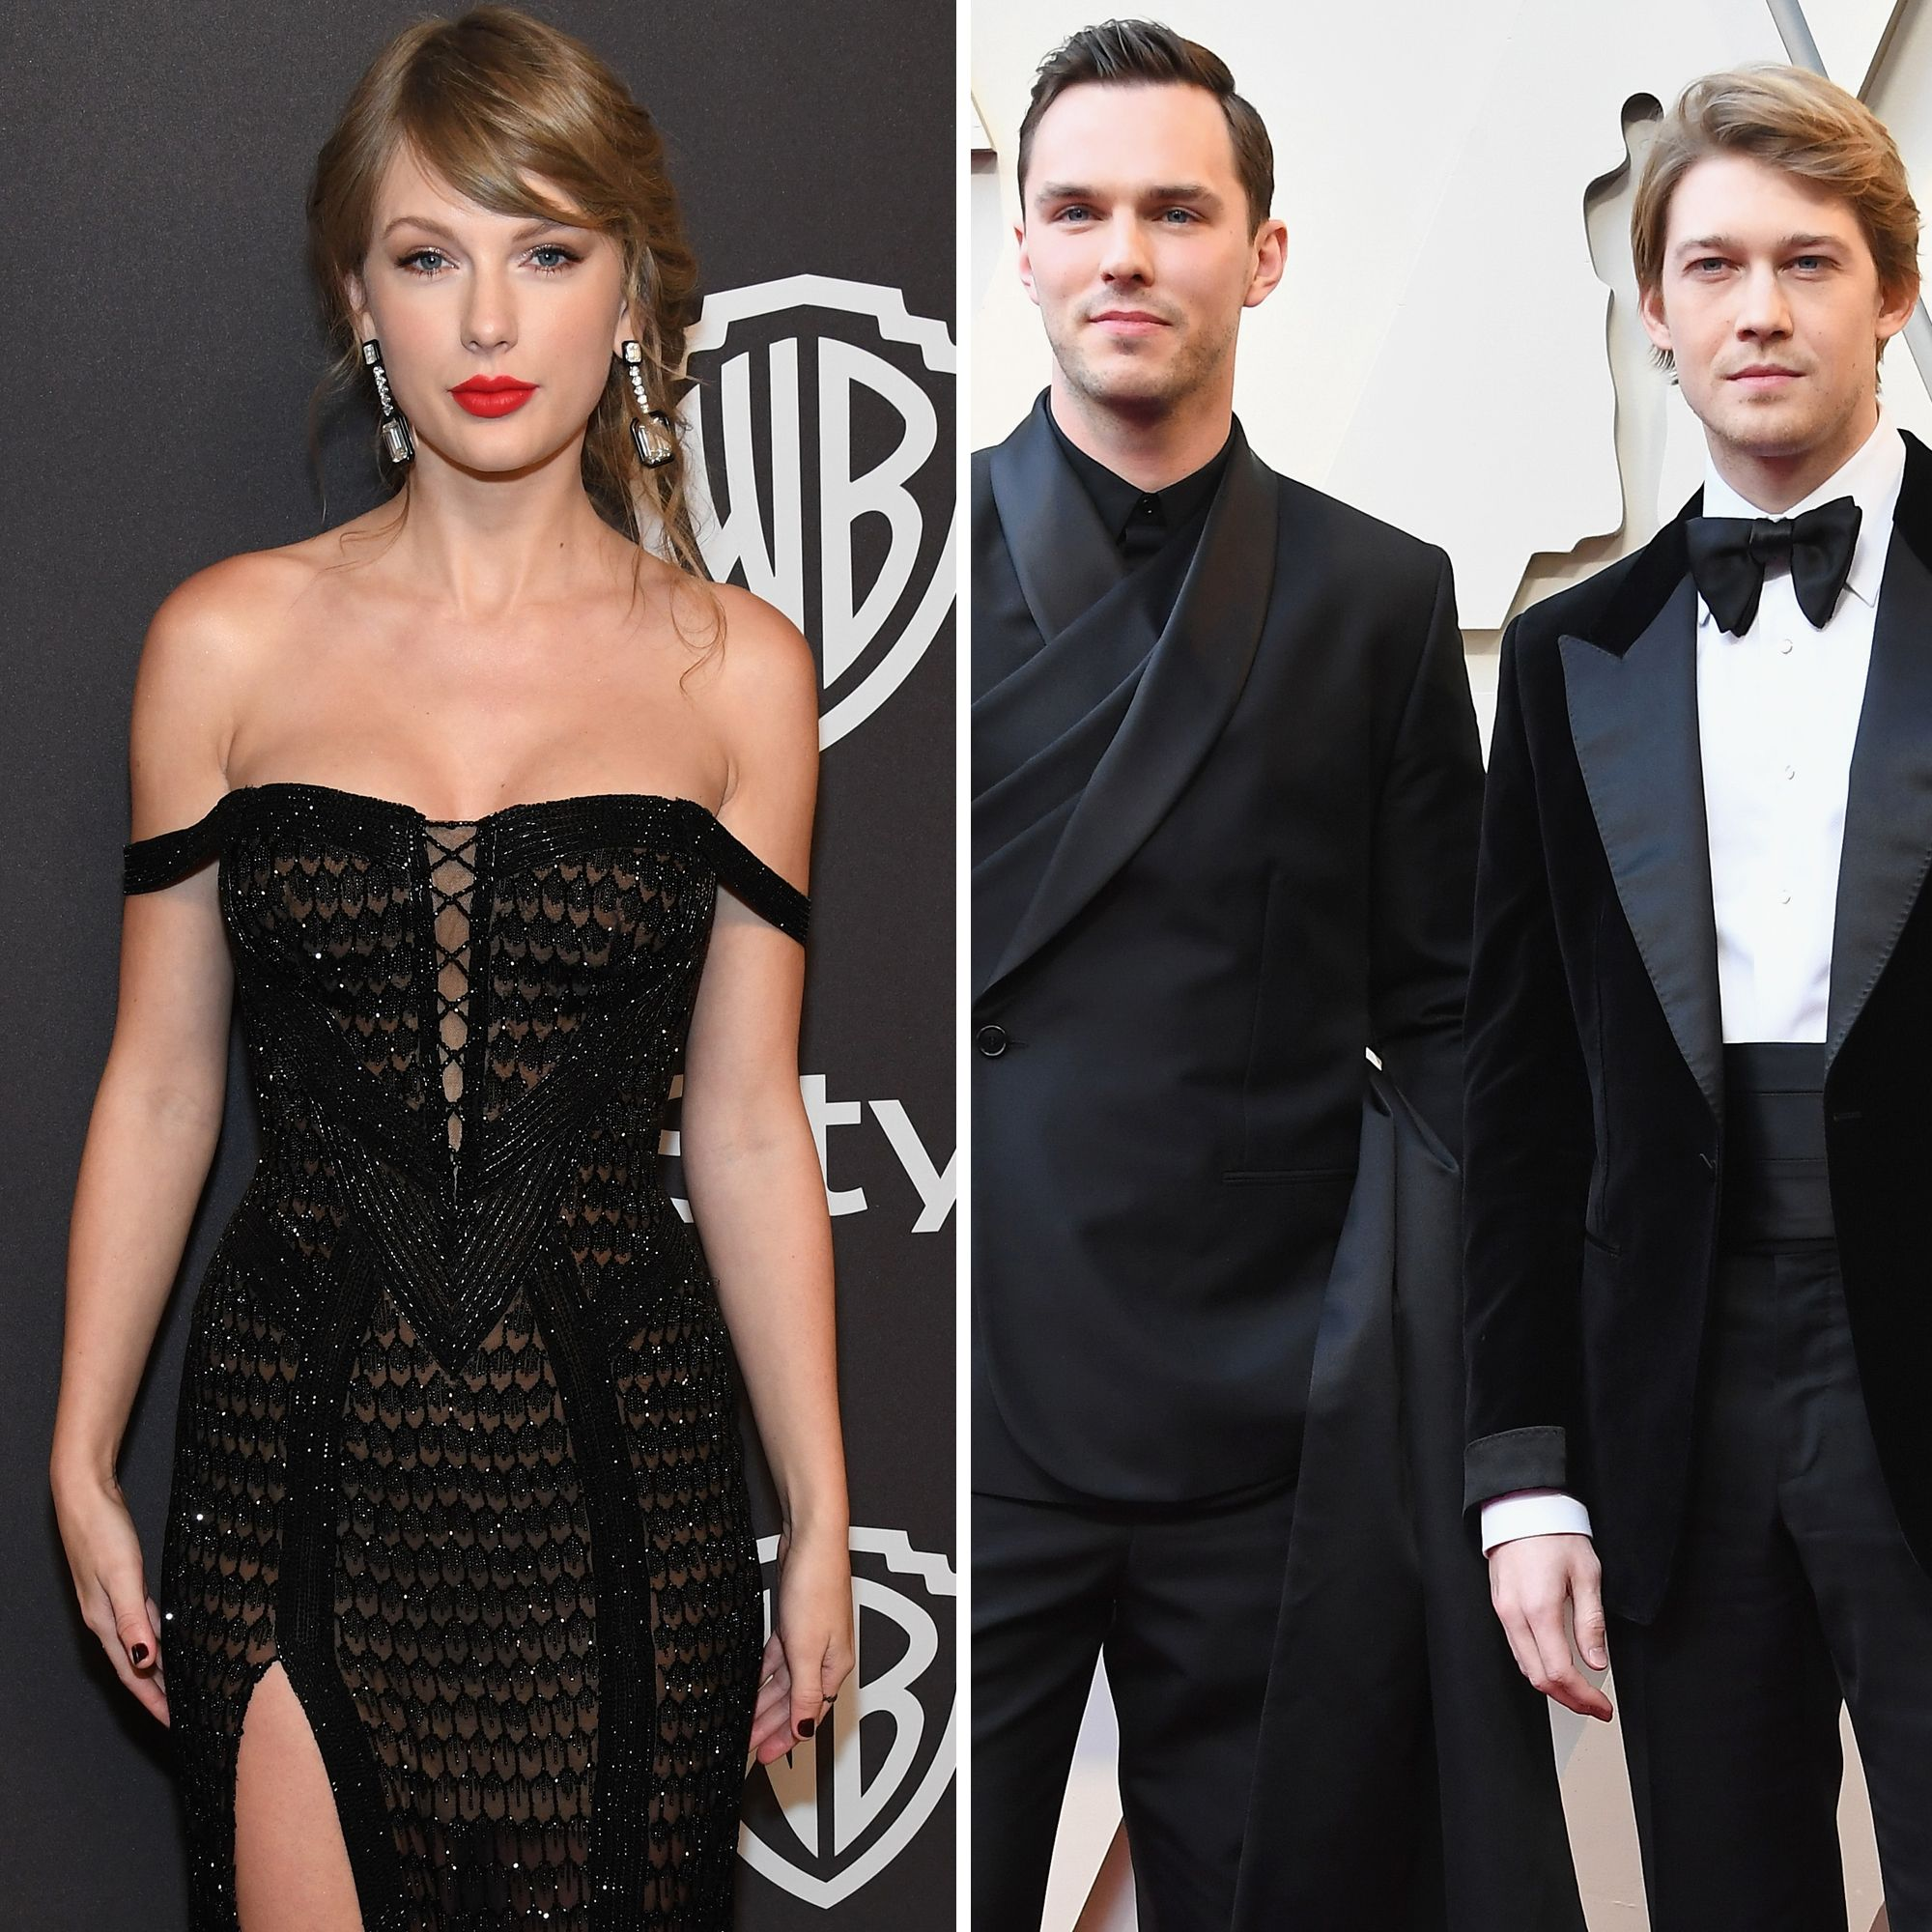 Did Taylor Swift Go To The Oscars 2019